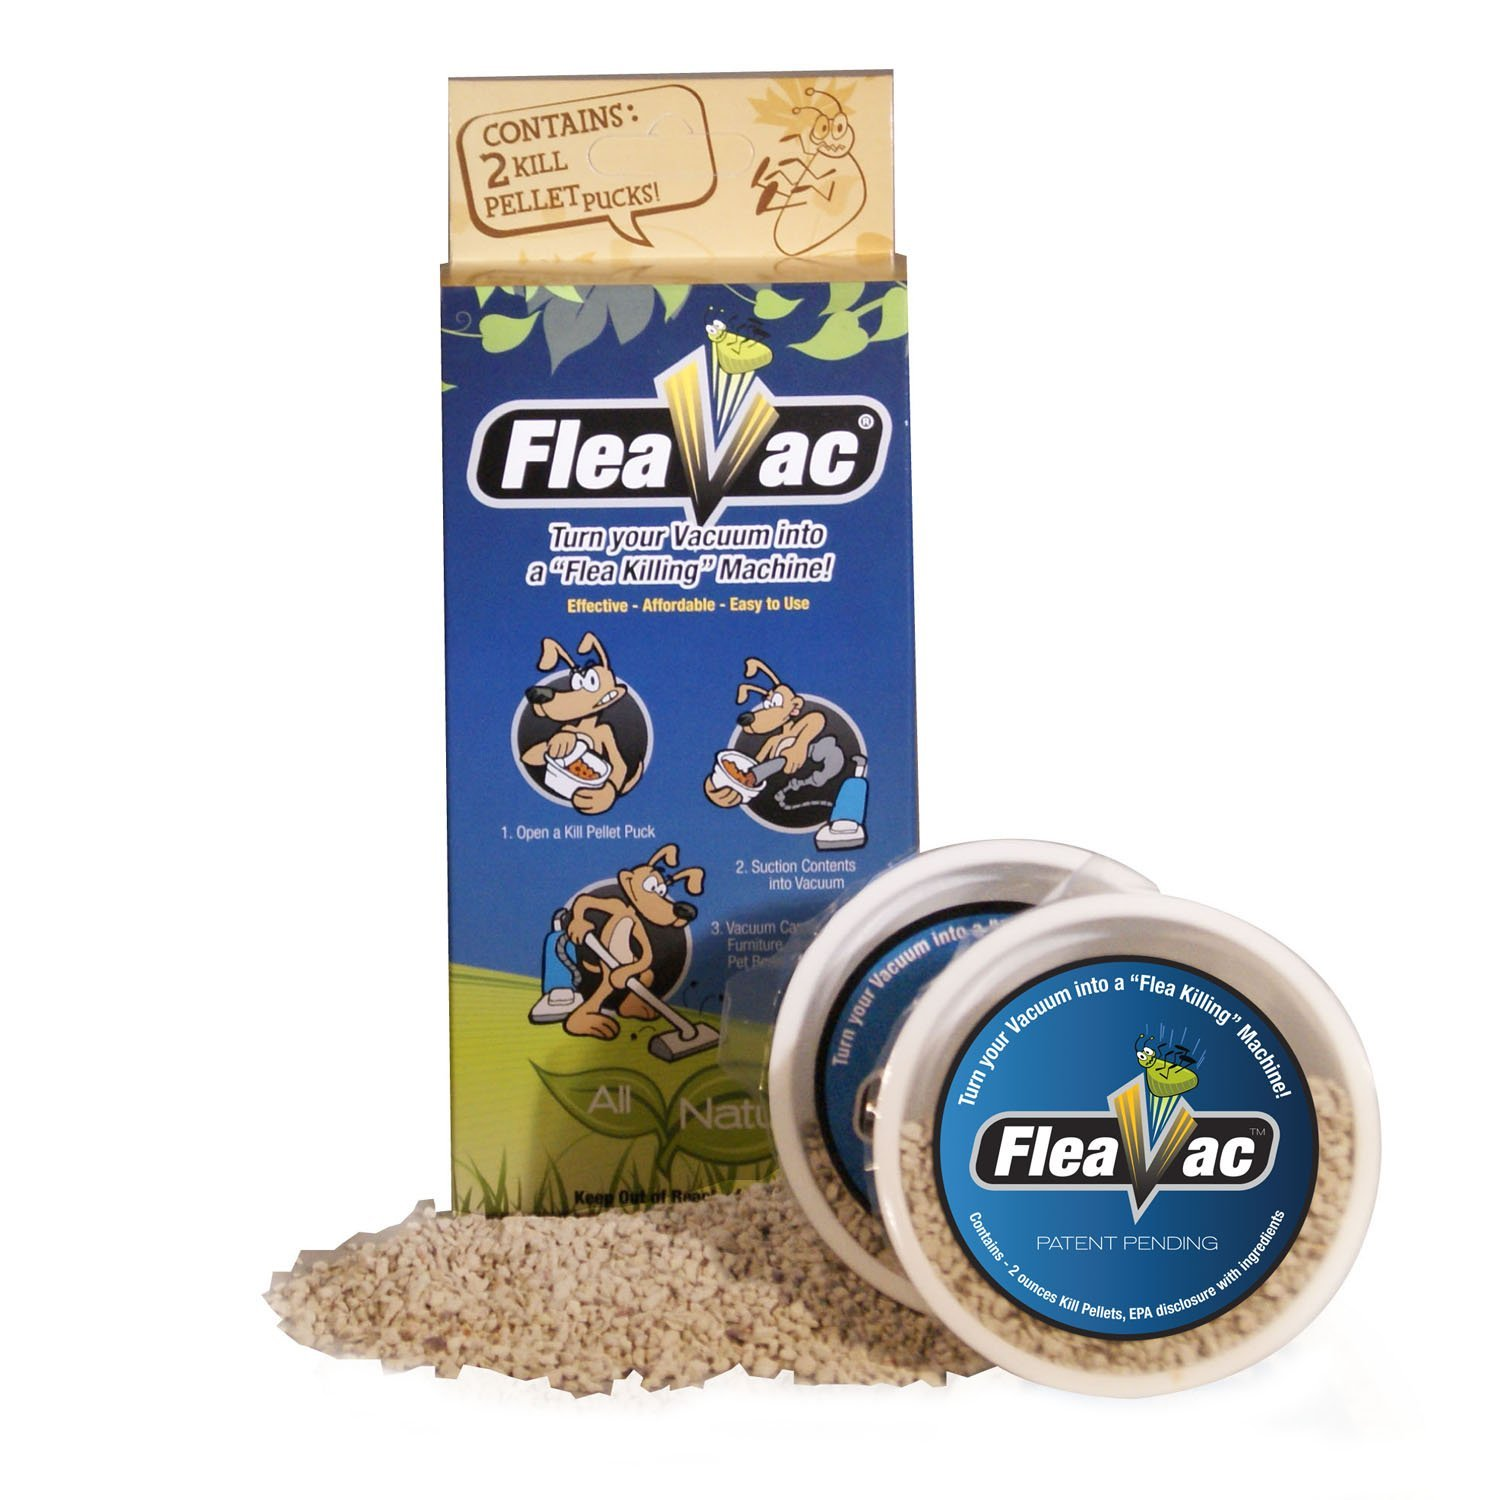 FleaVac 2 Pack Kill Pellets